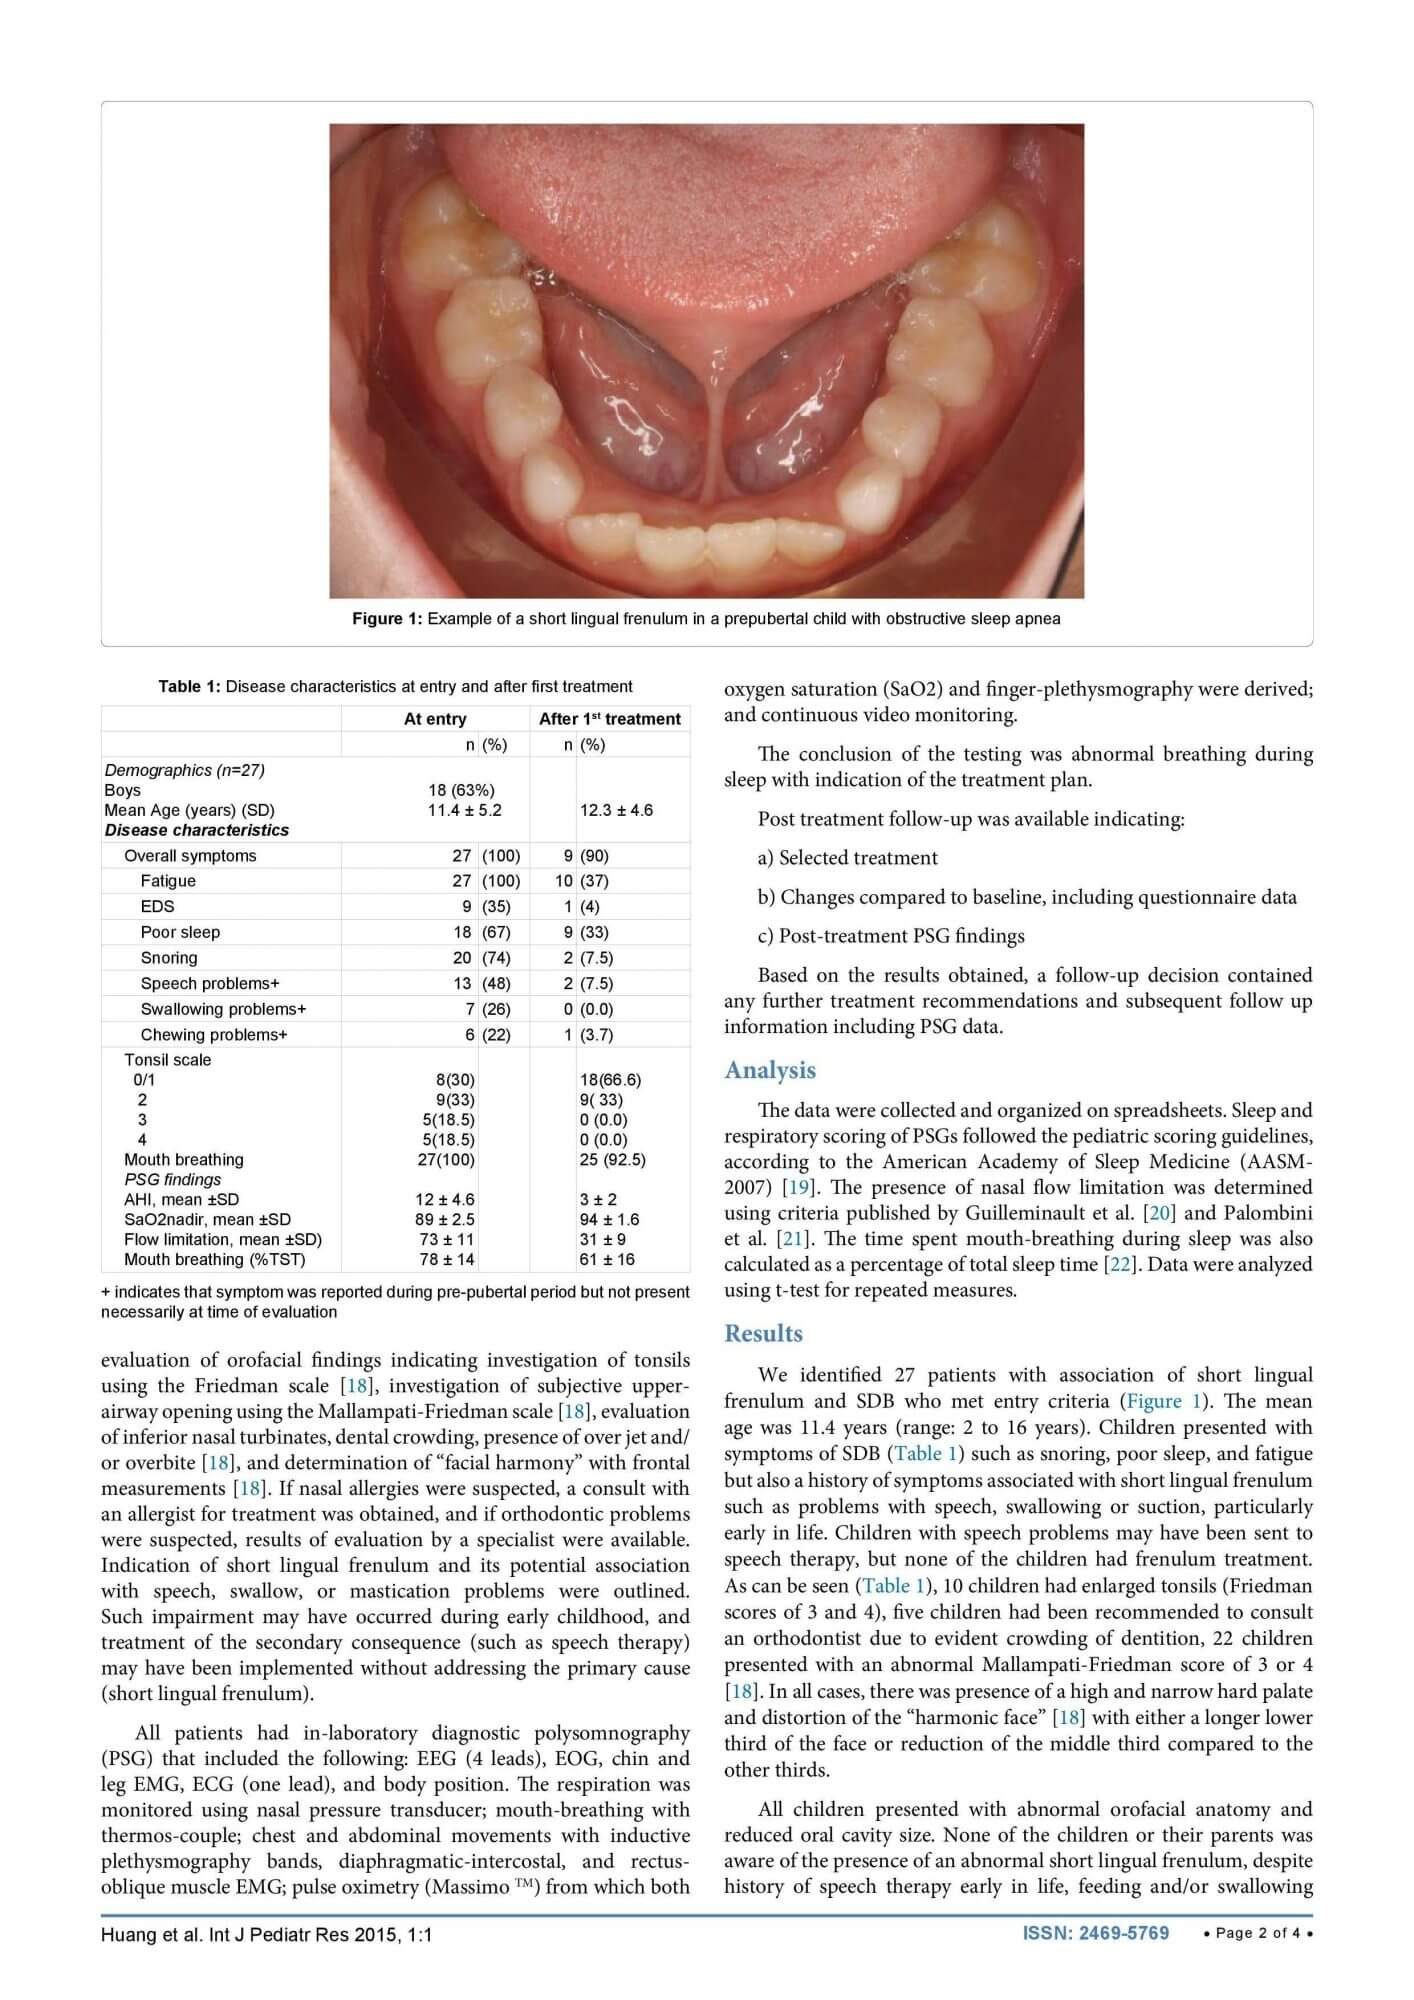 Short Lingual Frenulum and Obstructive Sleep Apnea in Children-2